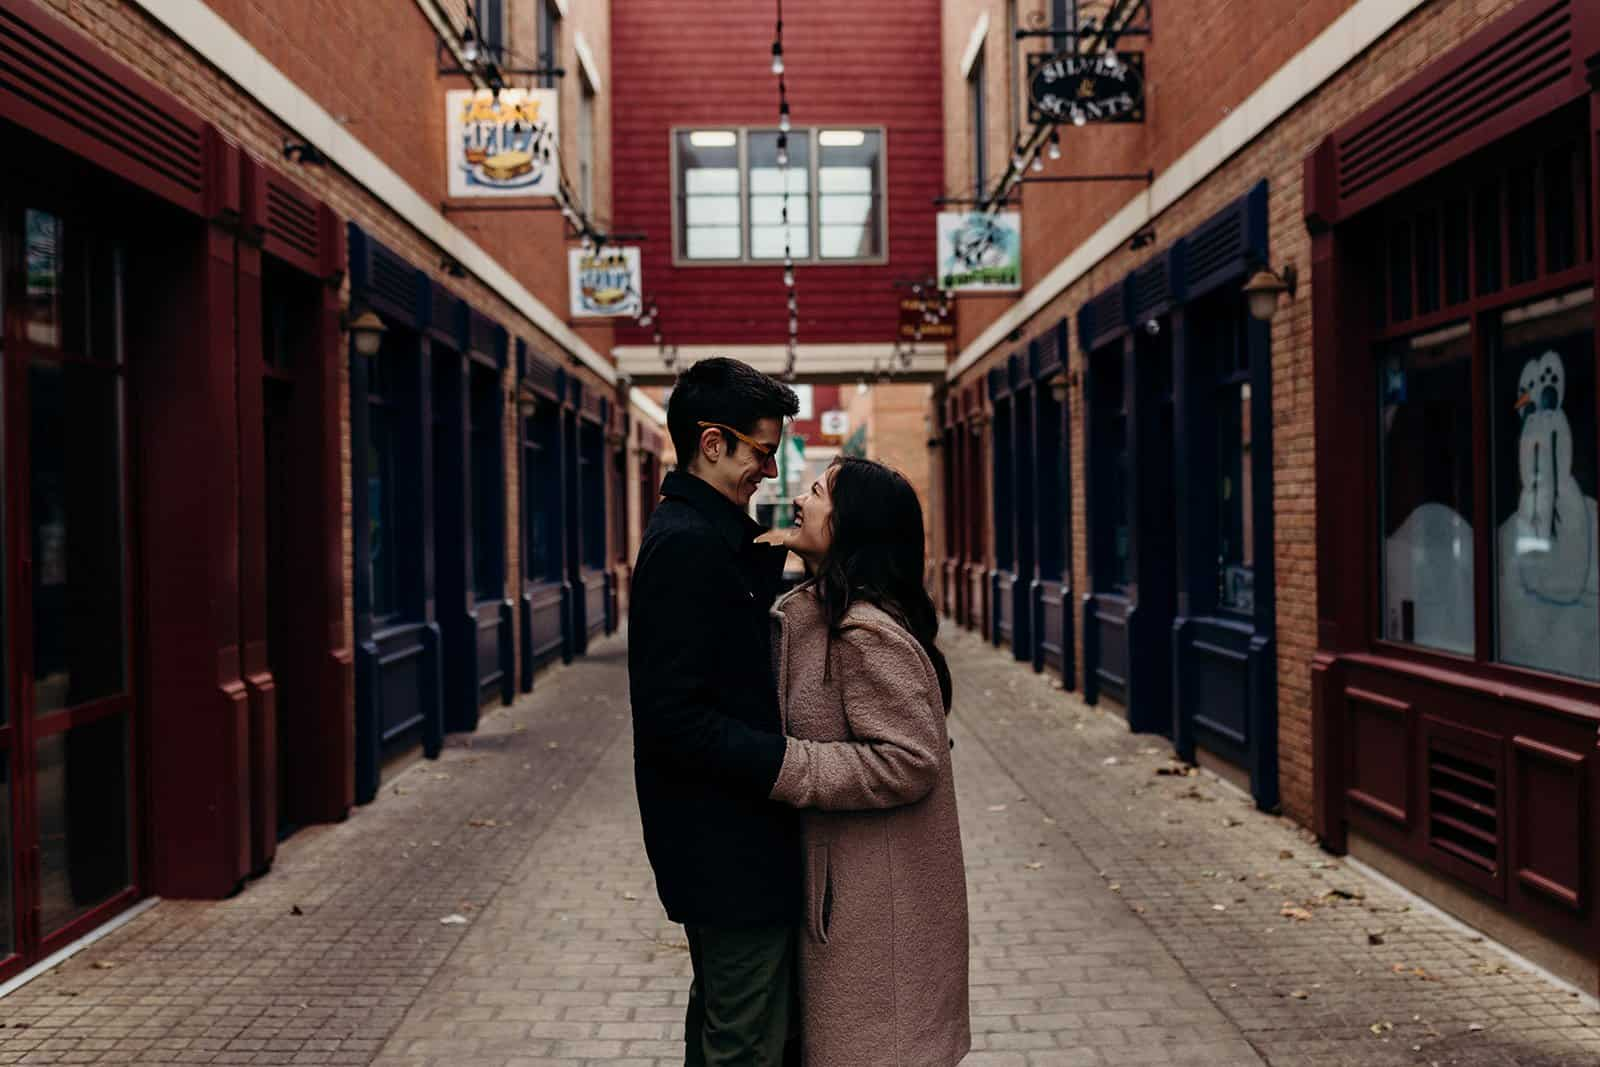 Kent ohio engaged couple laughing together in alley